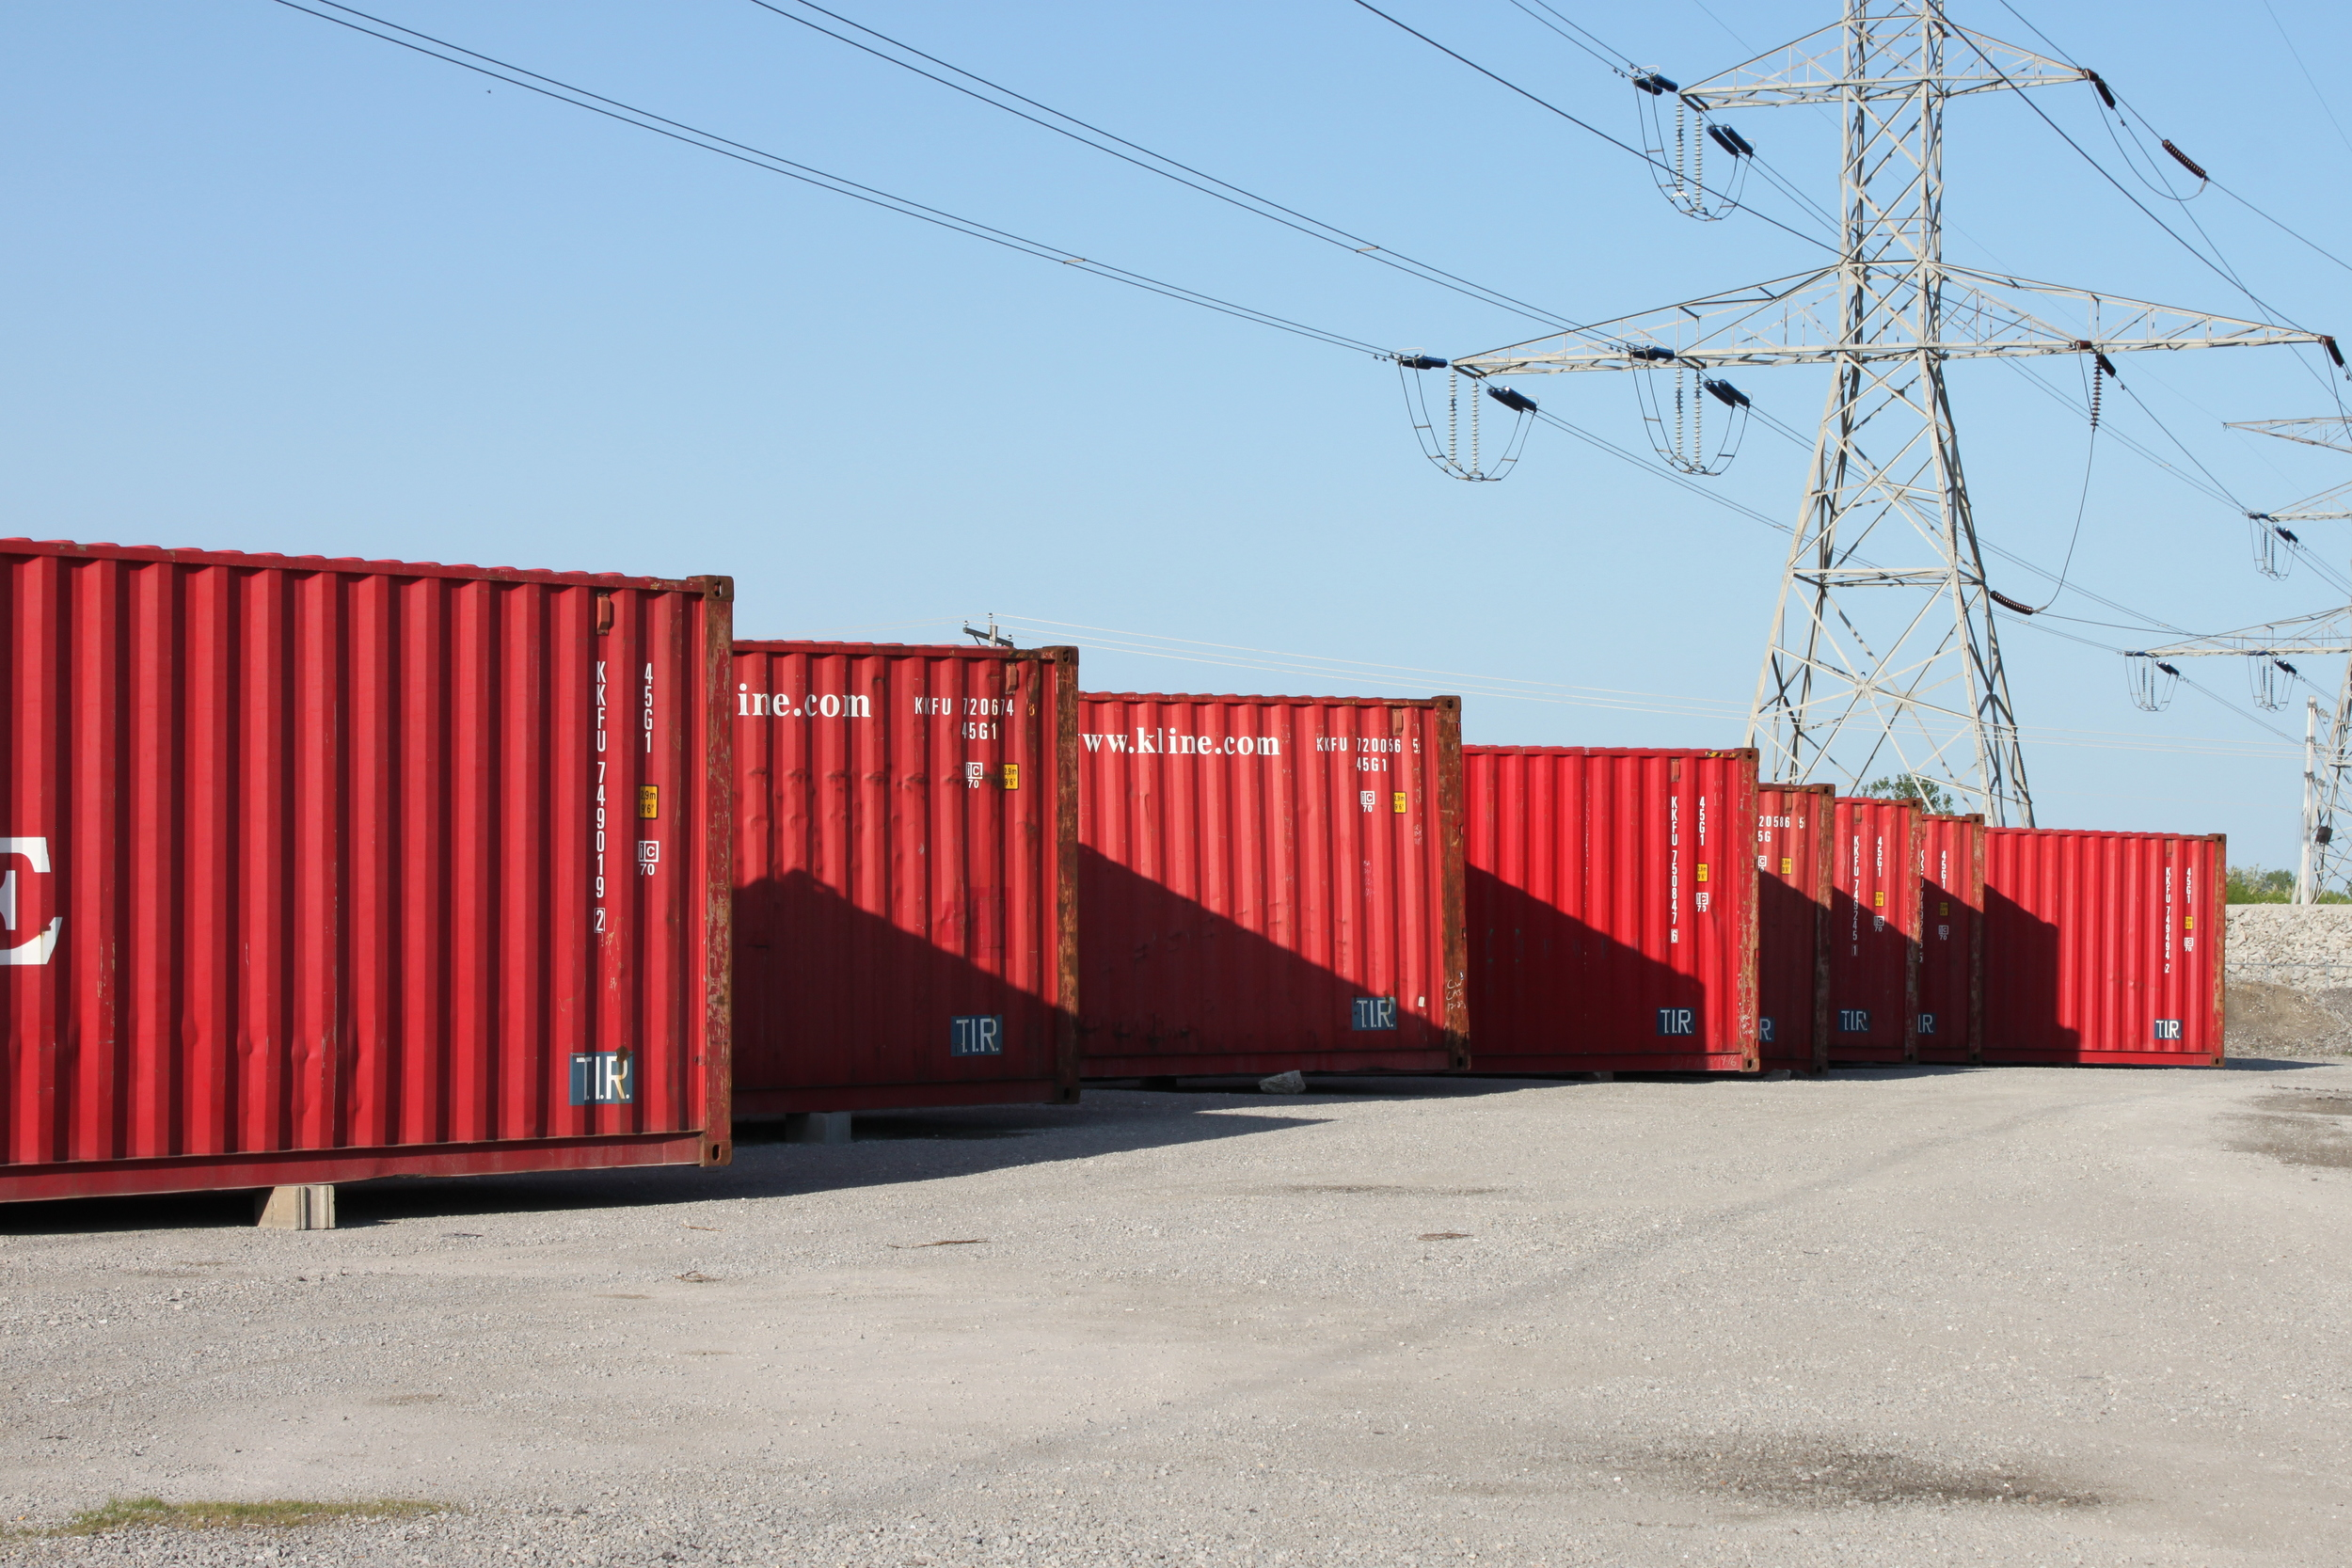 Containers staged near the new home